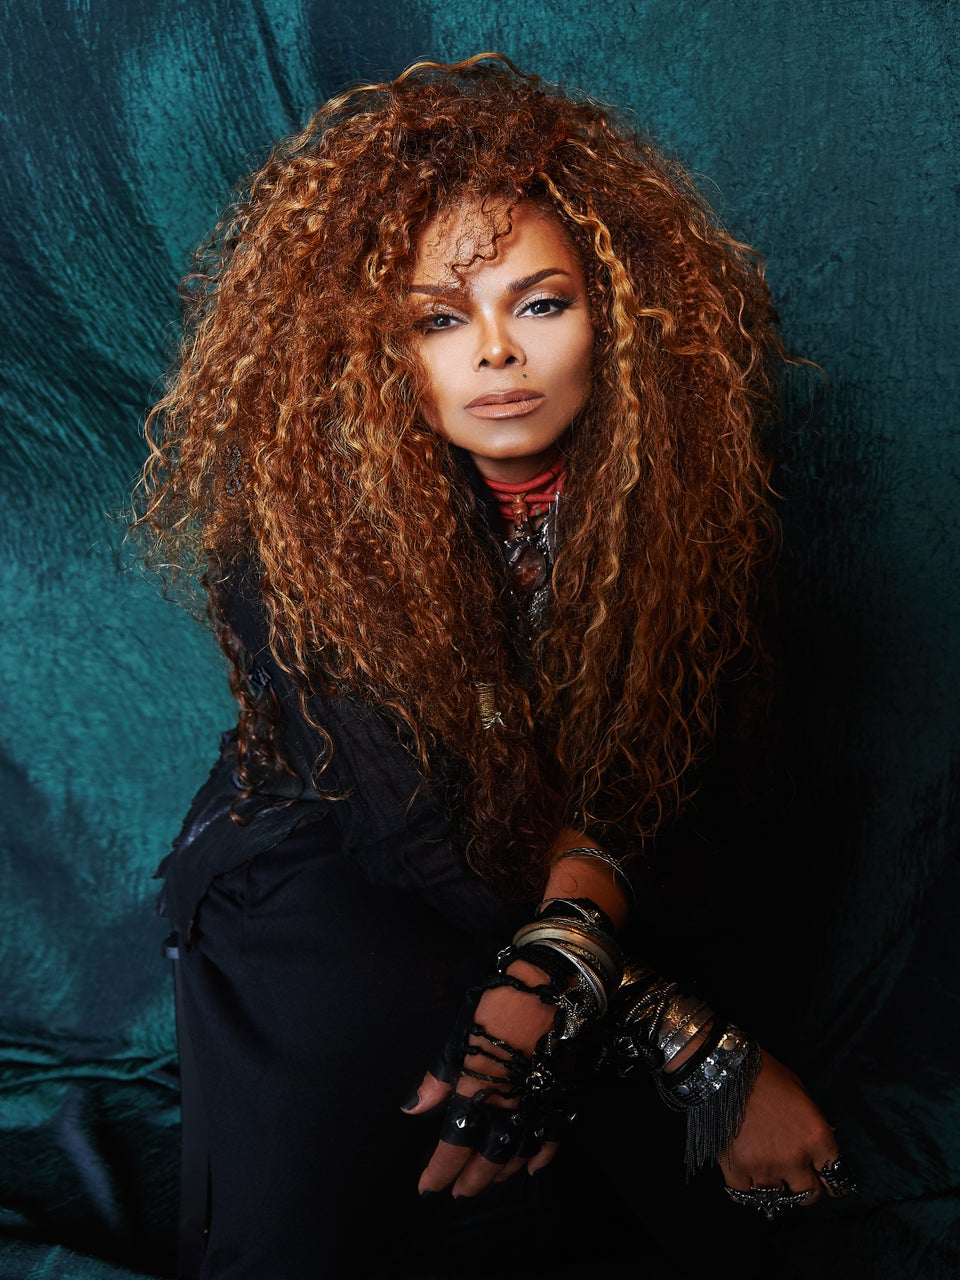 Janet Jackson Was Being Considered To Play Lena Horne Before The 2004 Super Bowl